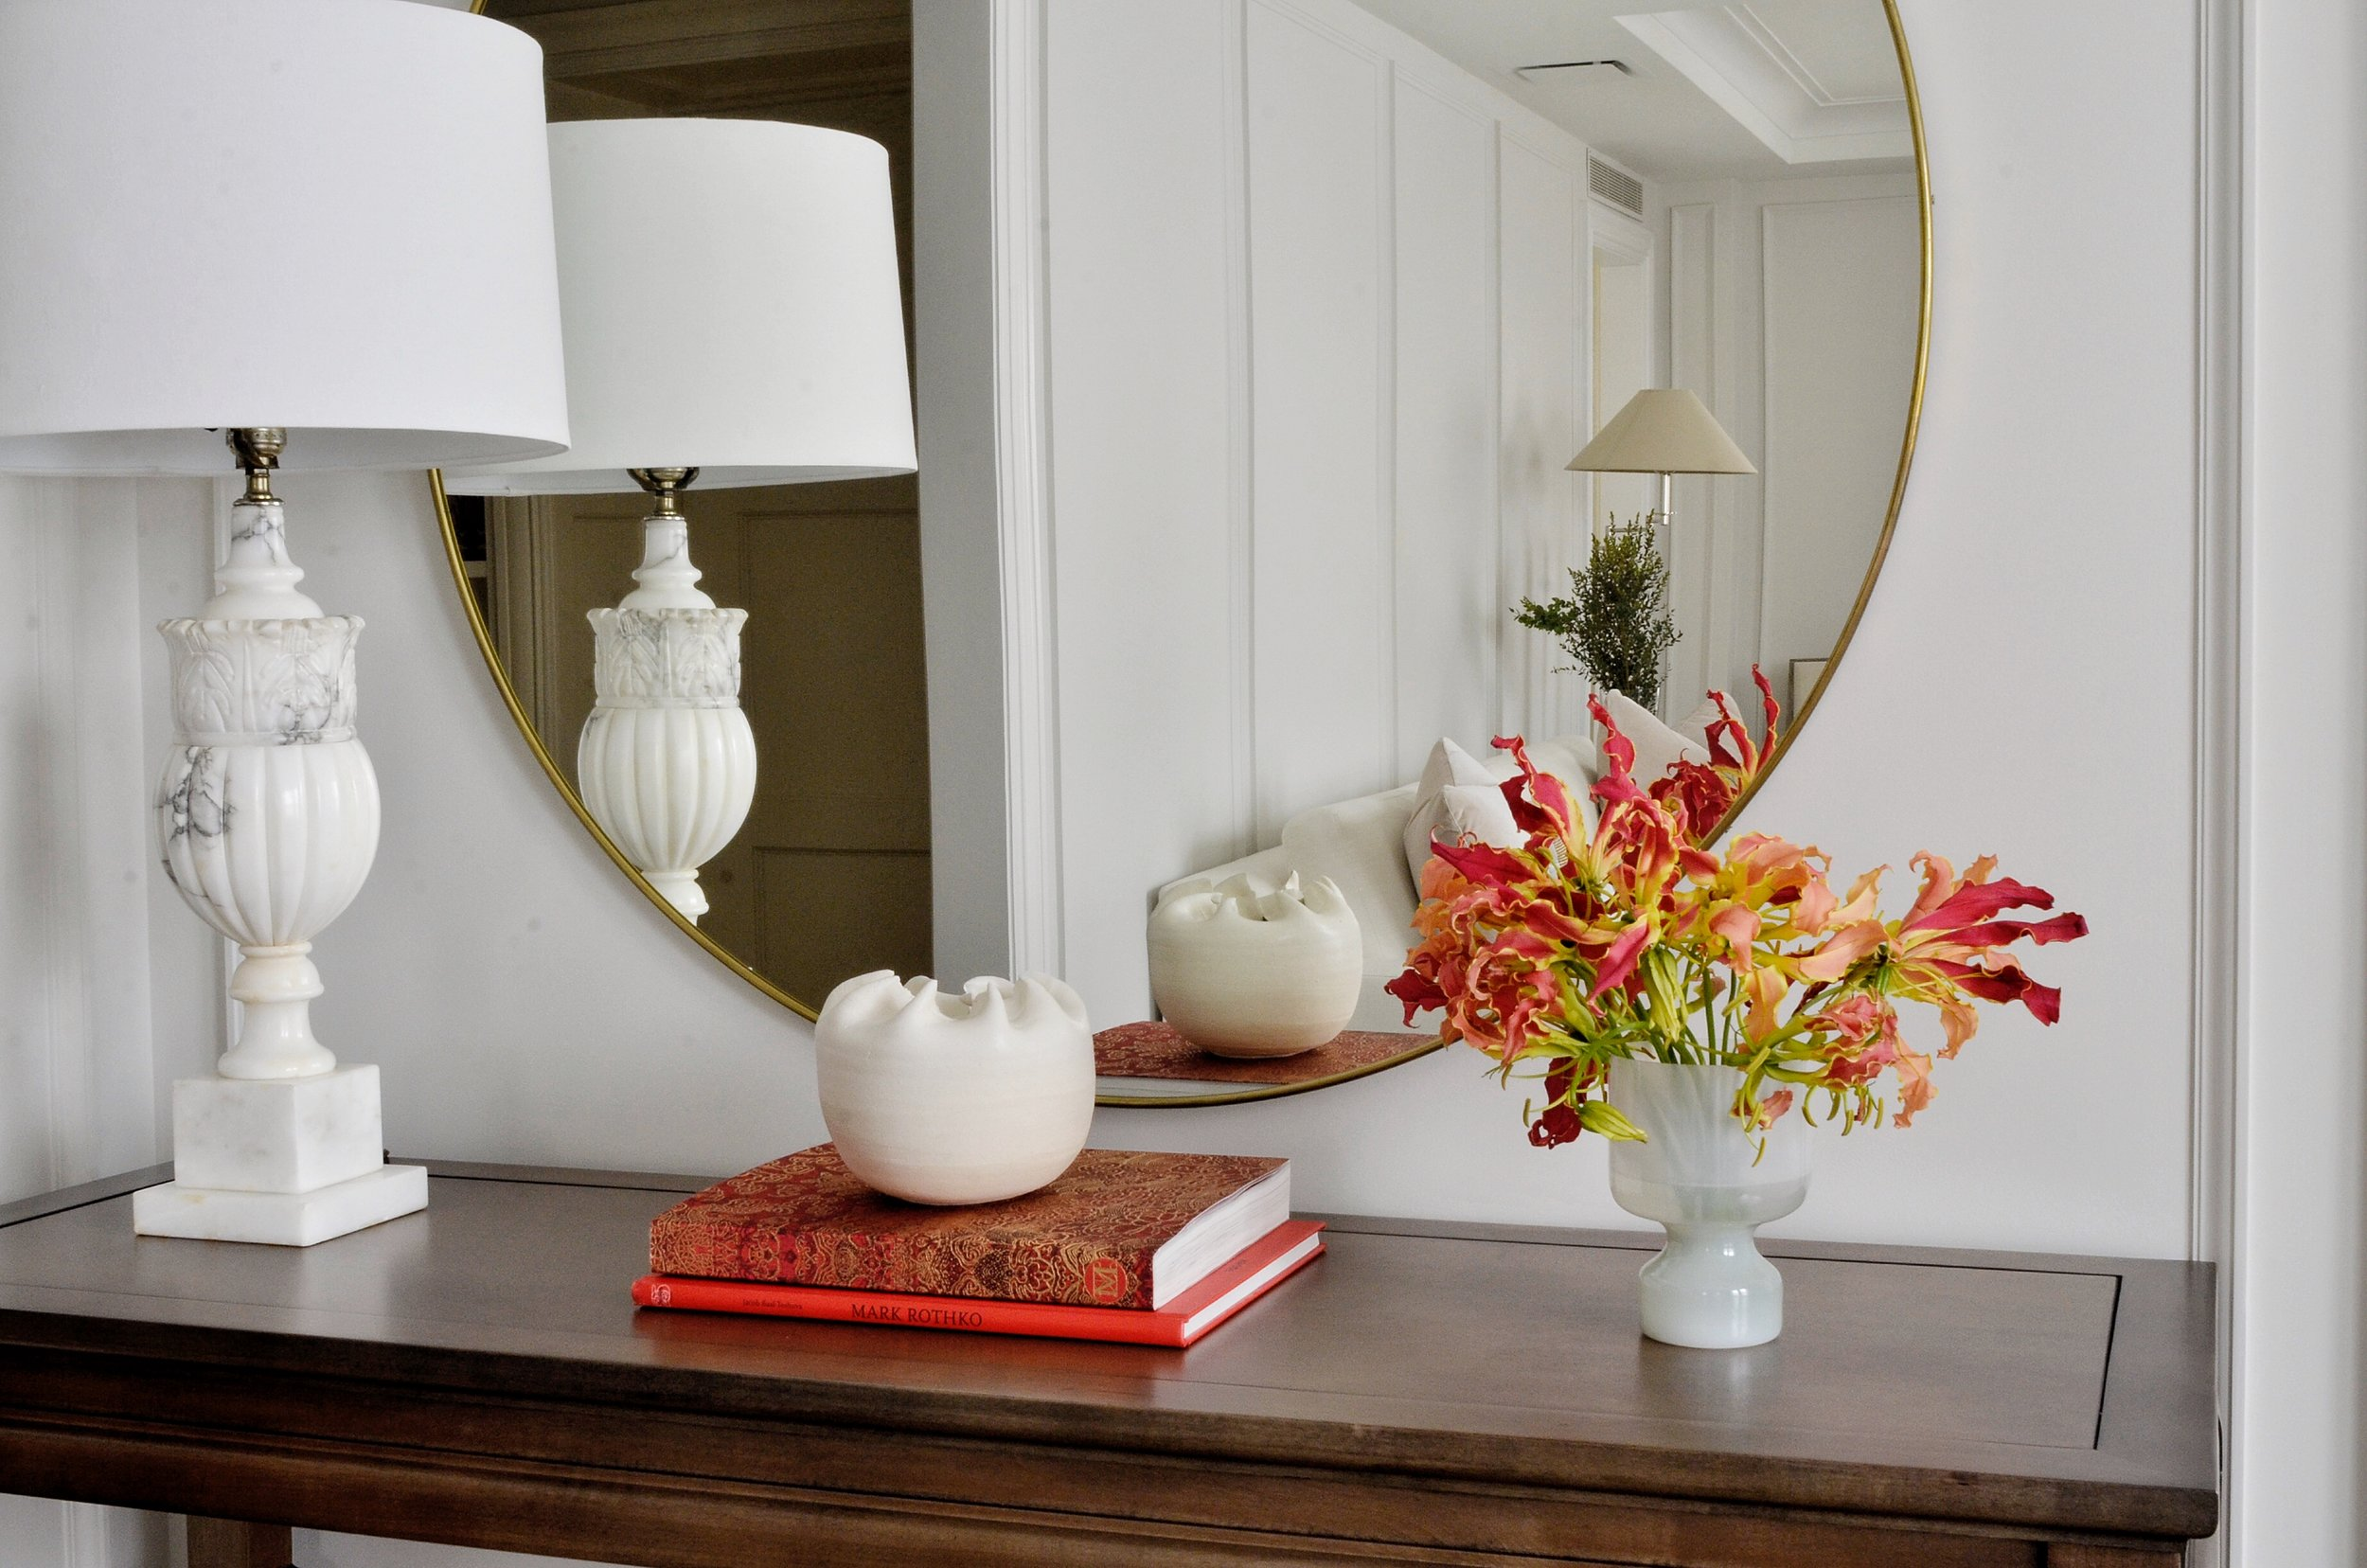 Console Styled with Gloriosa Lilies, designed by Born on Bowery.